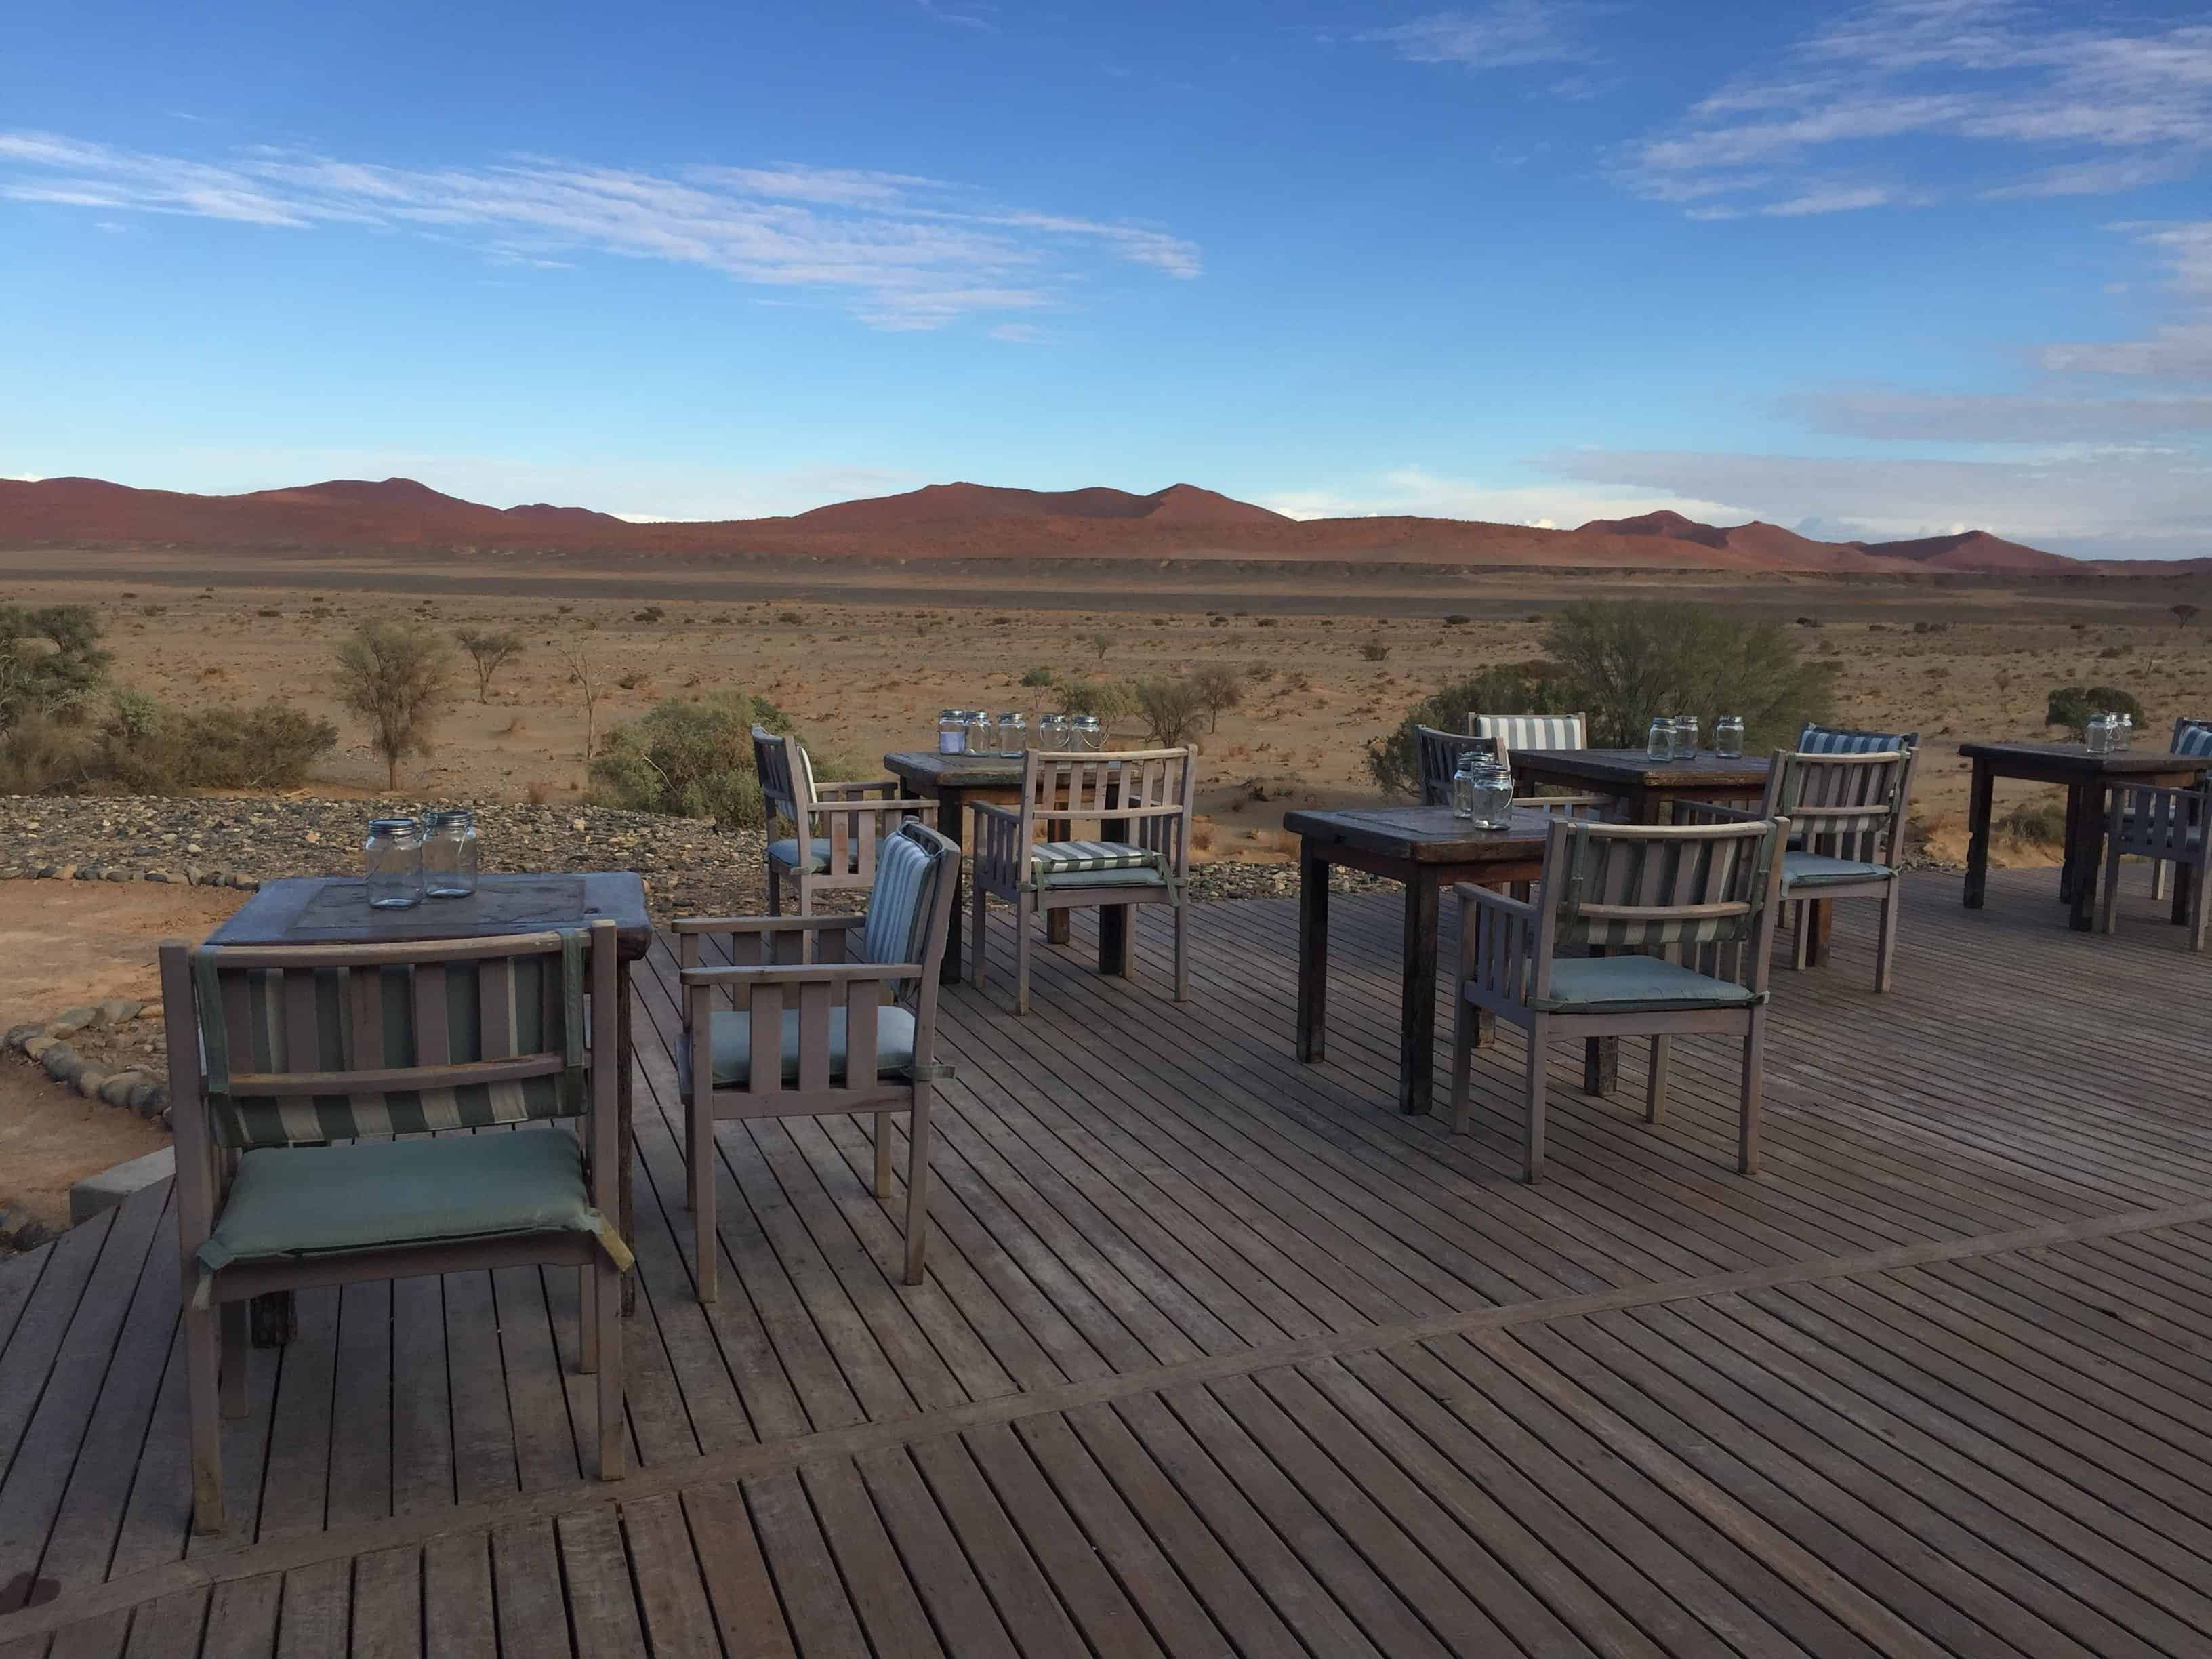 My Timeless Journey to Namibia | Taga Safaris